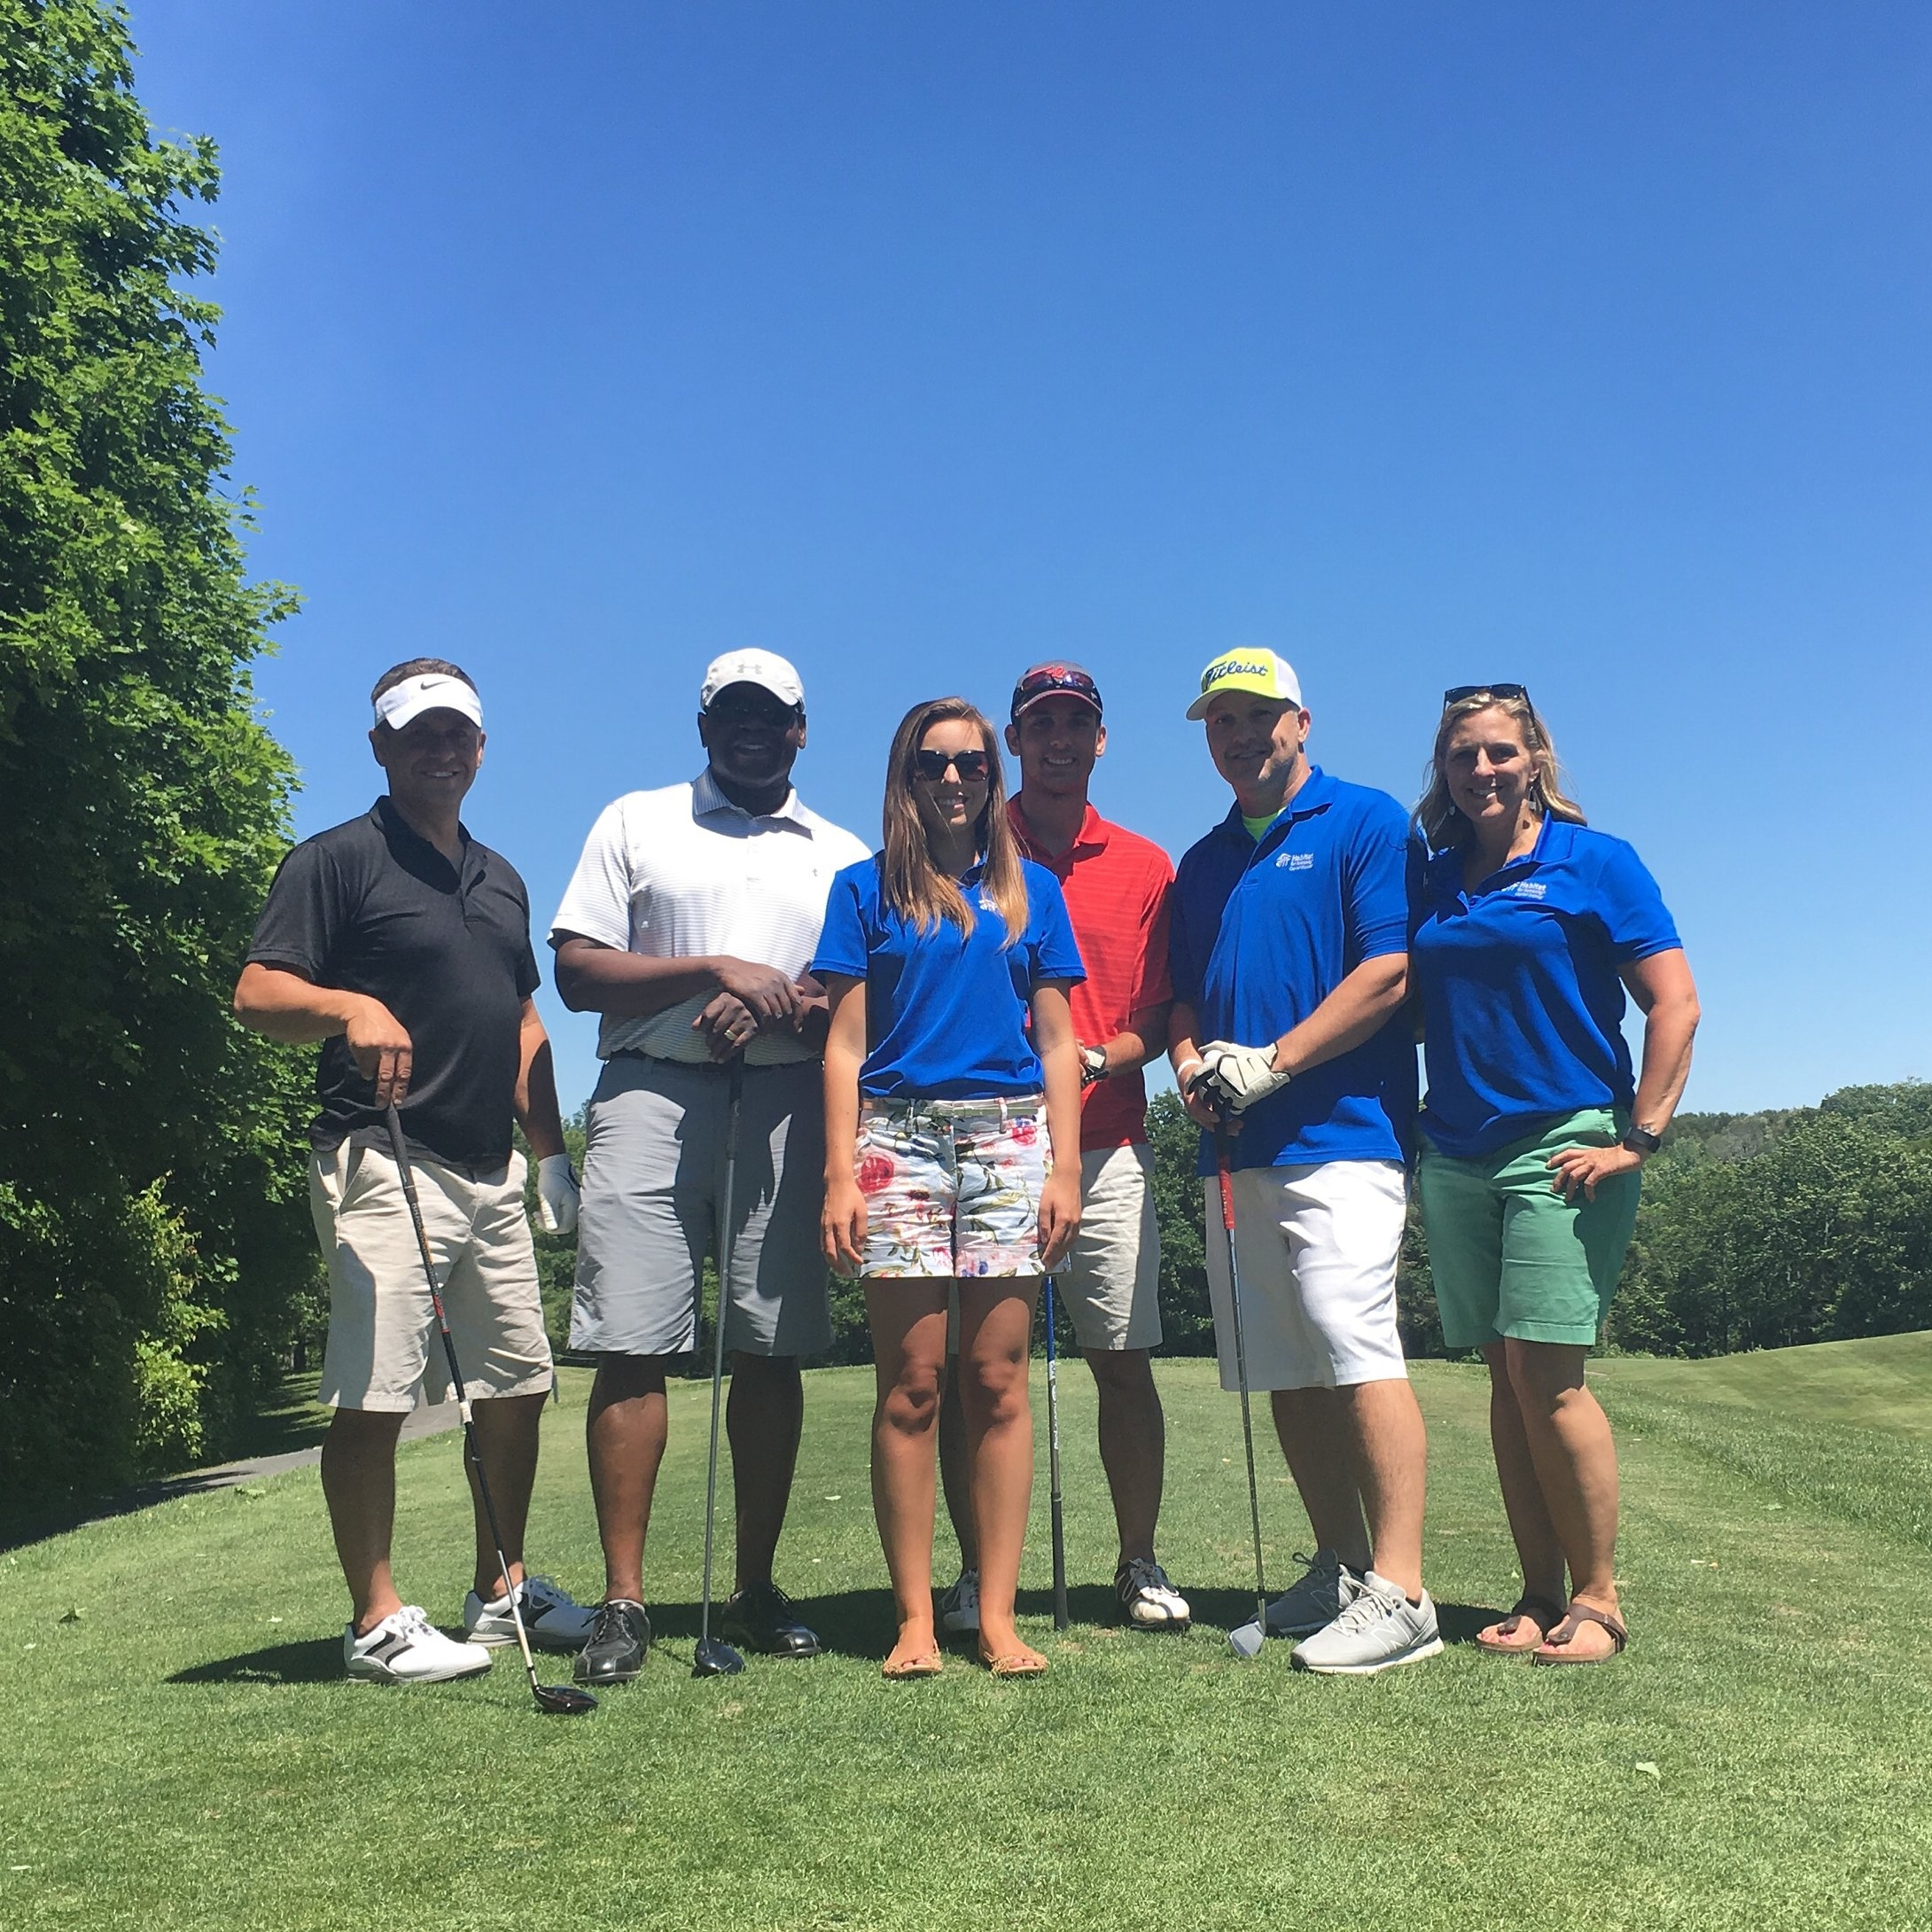 Plan a golf outing